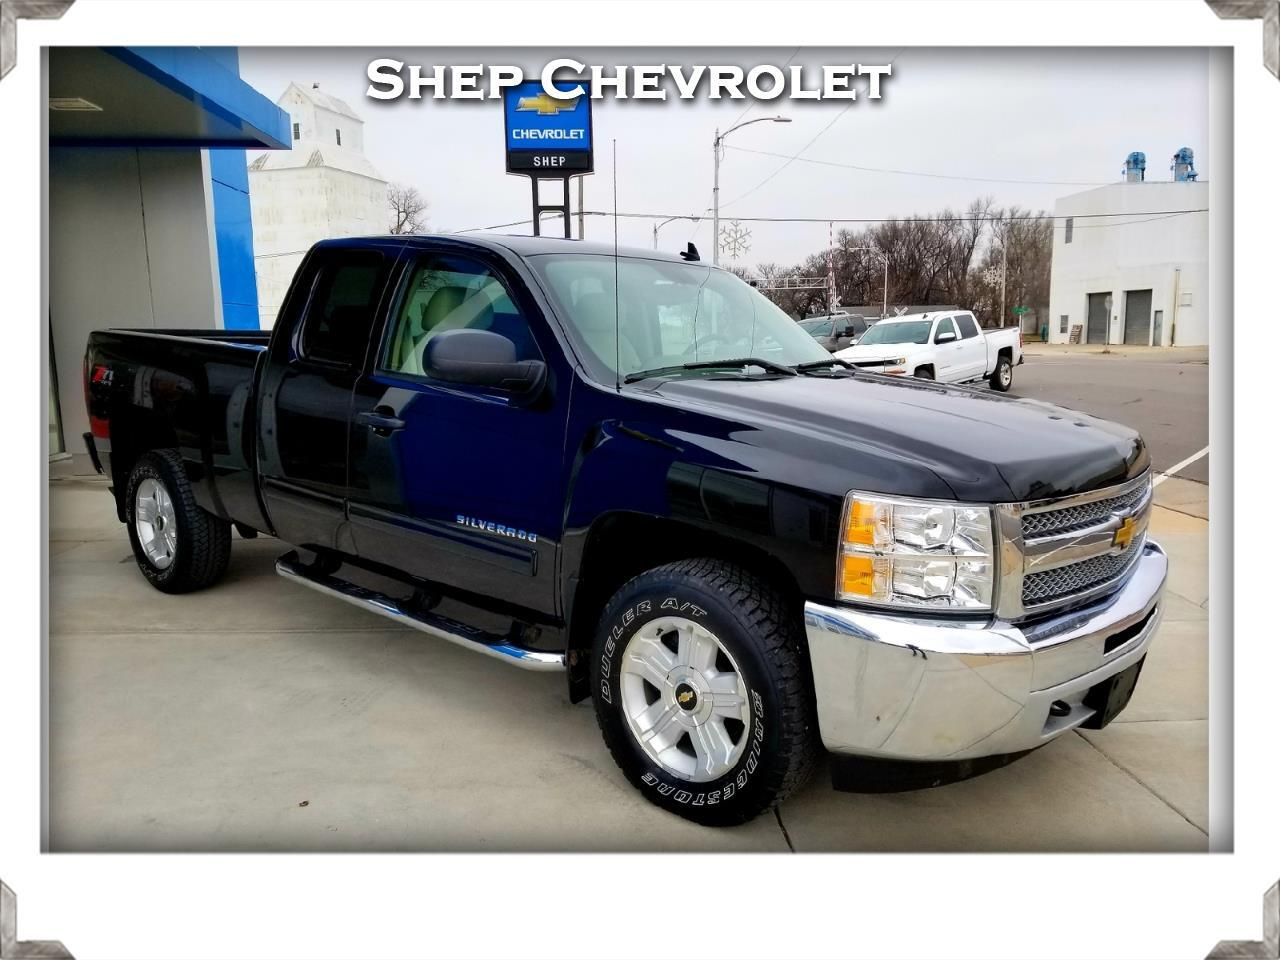 2013 Chevrolet Silverado 1500 4wd Ext. Cab LT Z71 w/ All Star Edition